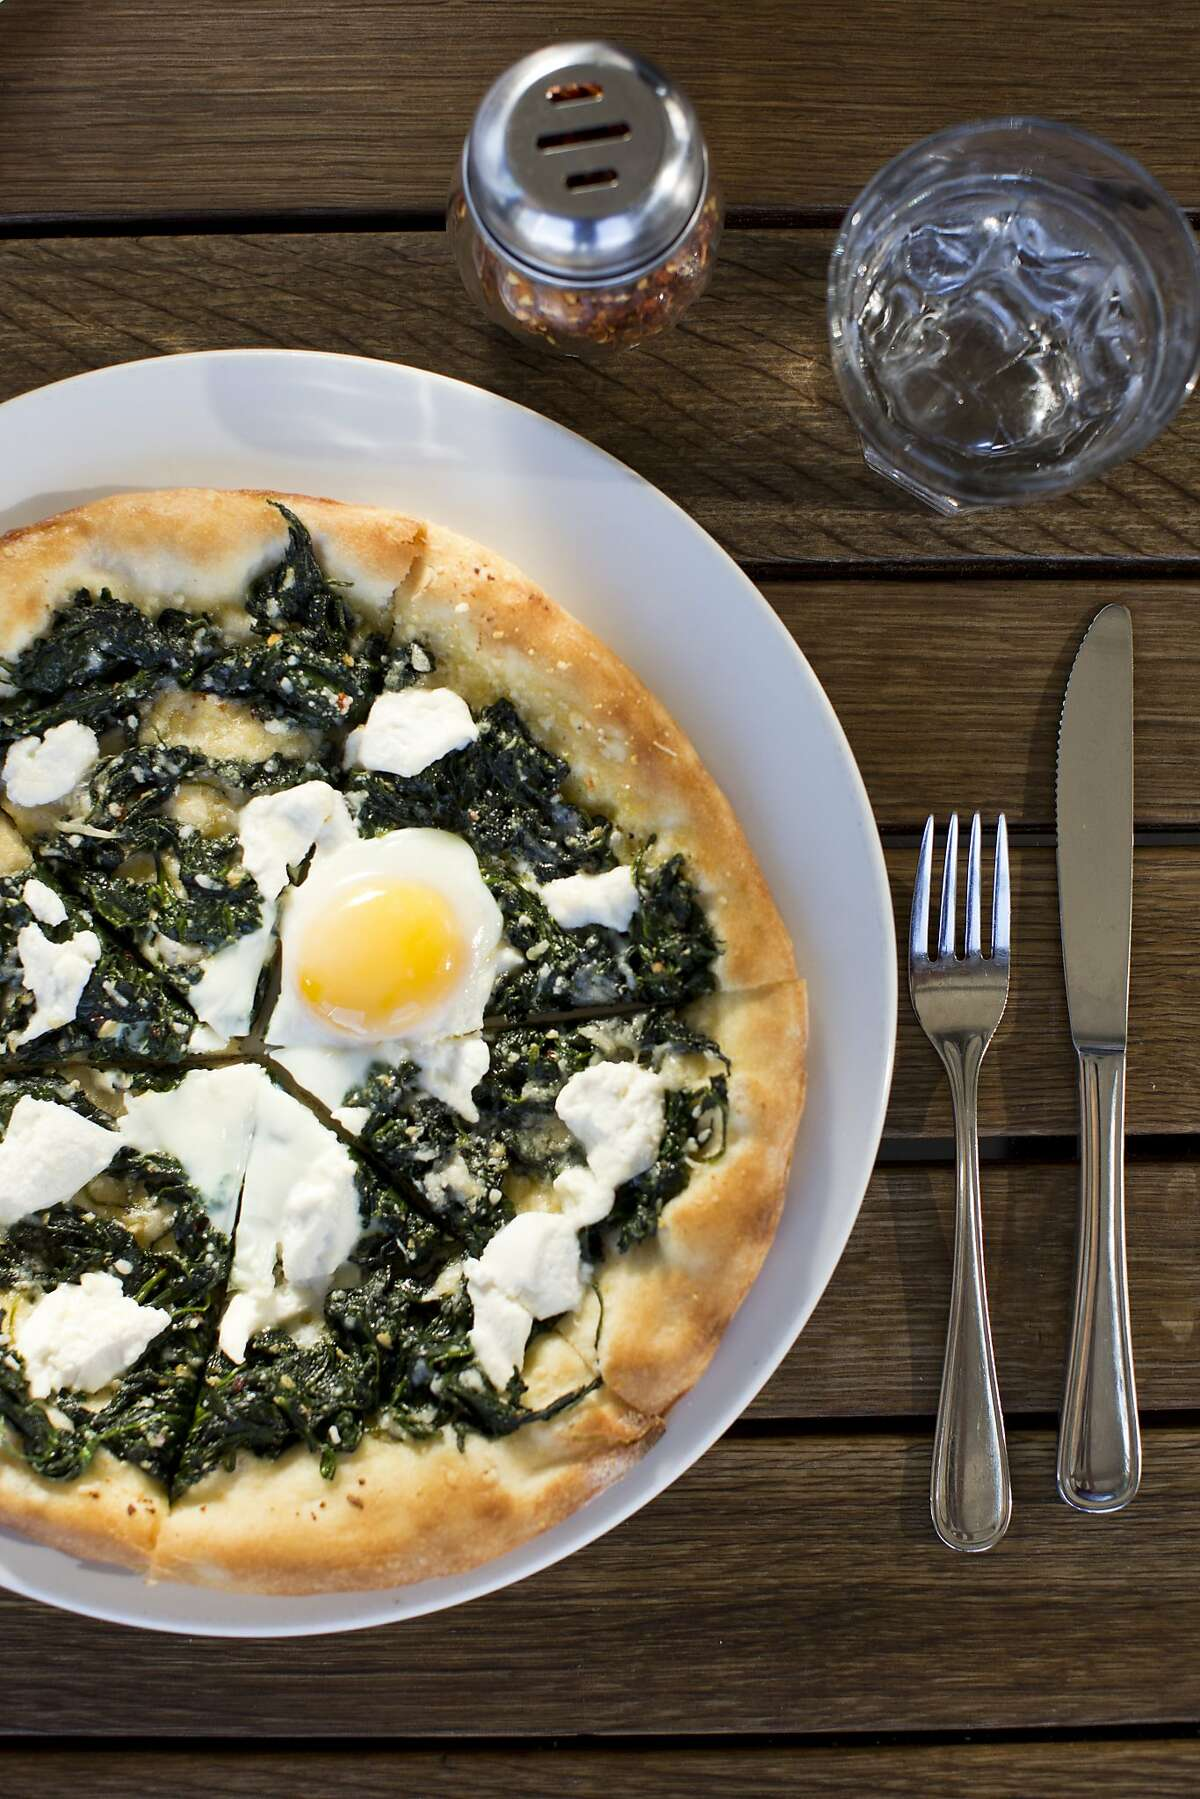 A Verde pizza with spinach, garlic, chilies & ricotta at Azzurro Pizzeria e Enoteca in Napa, Calif., Wednesday, October 2, 2013.